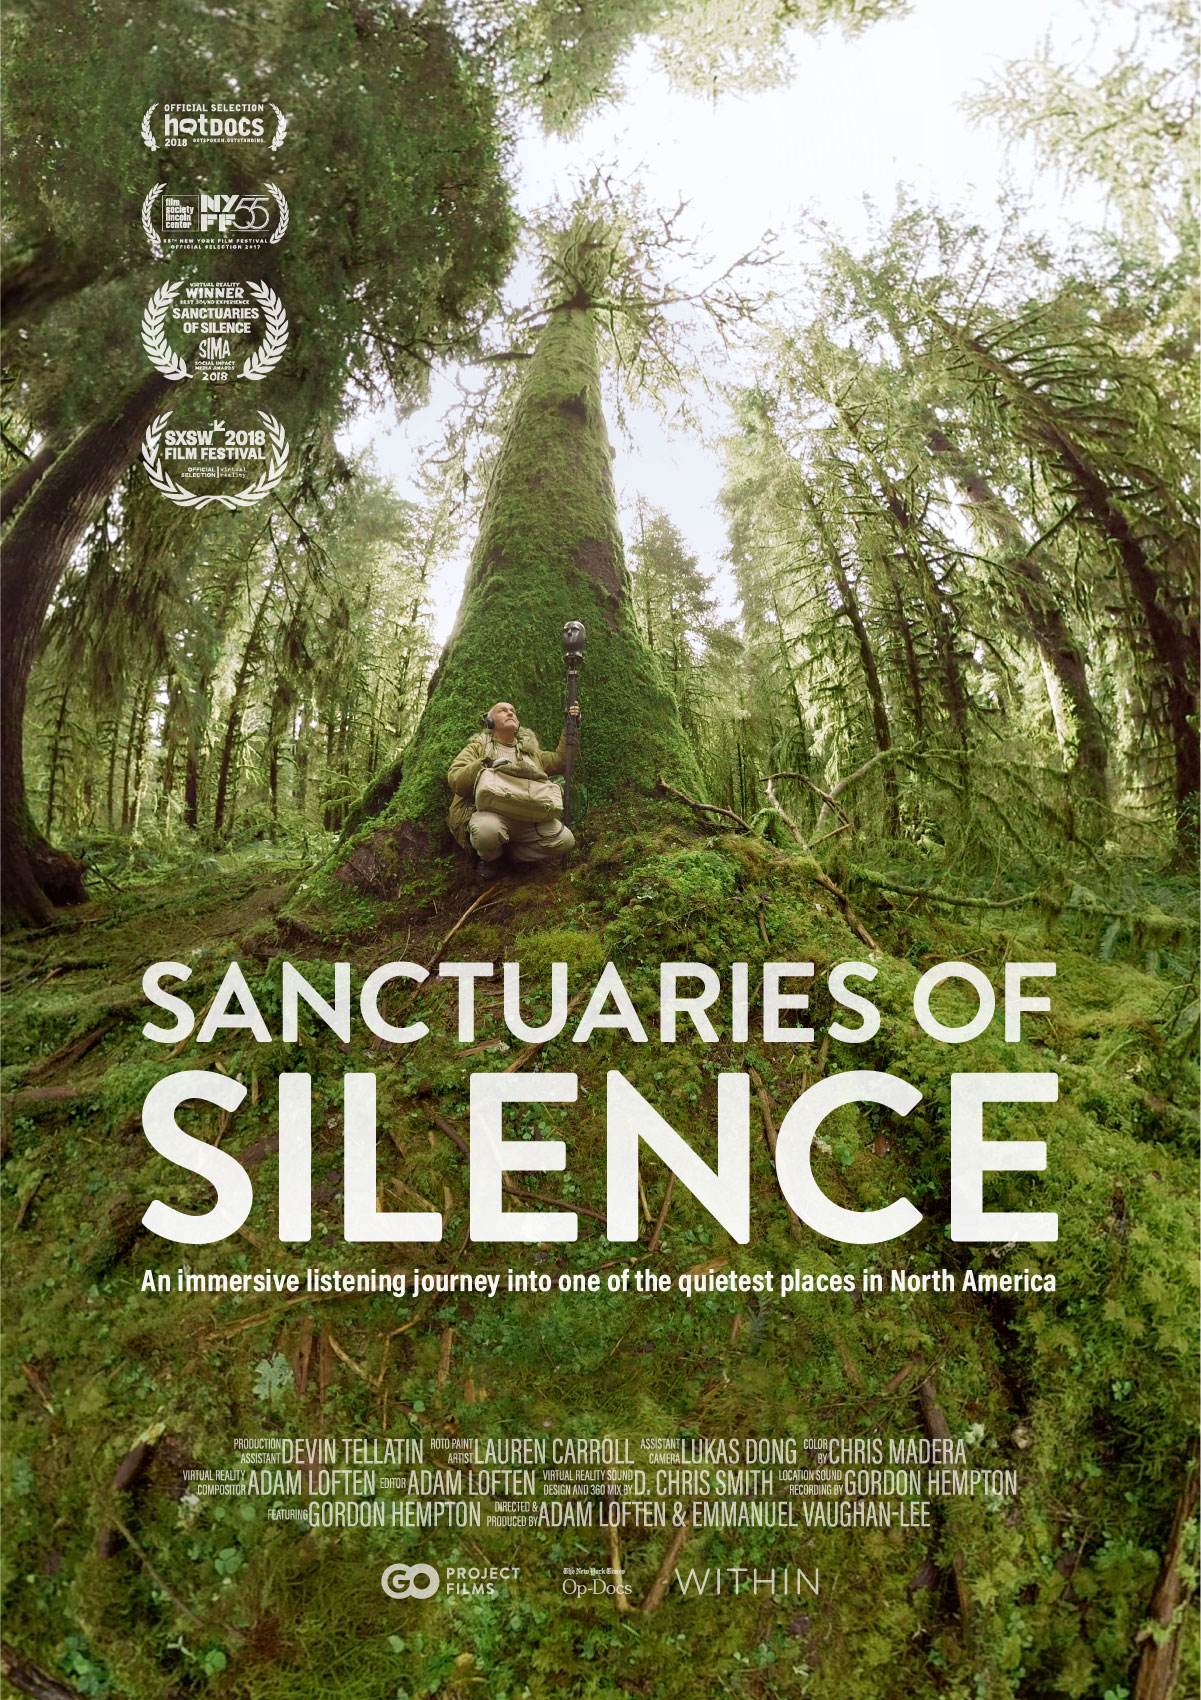 Poster for the film Sanctuaries of Silence. Features a man sitting in the woods at the bottom of the tree surrounded by green moss recording sounds of nature.